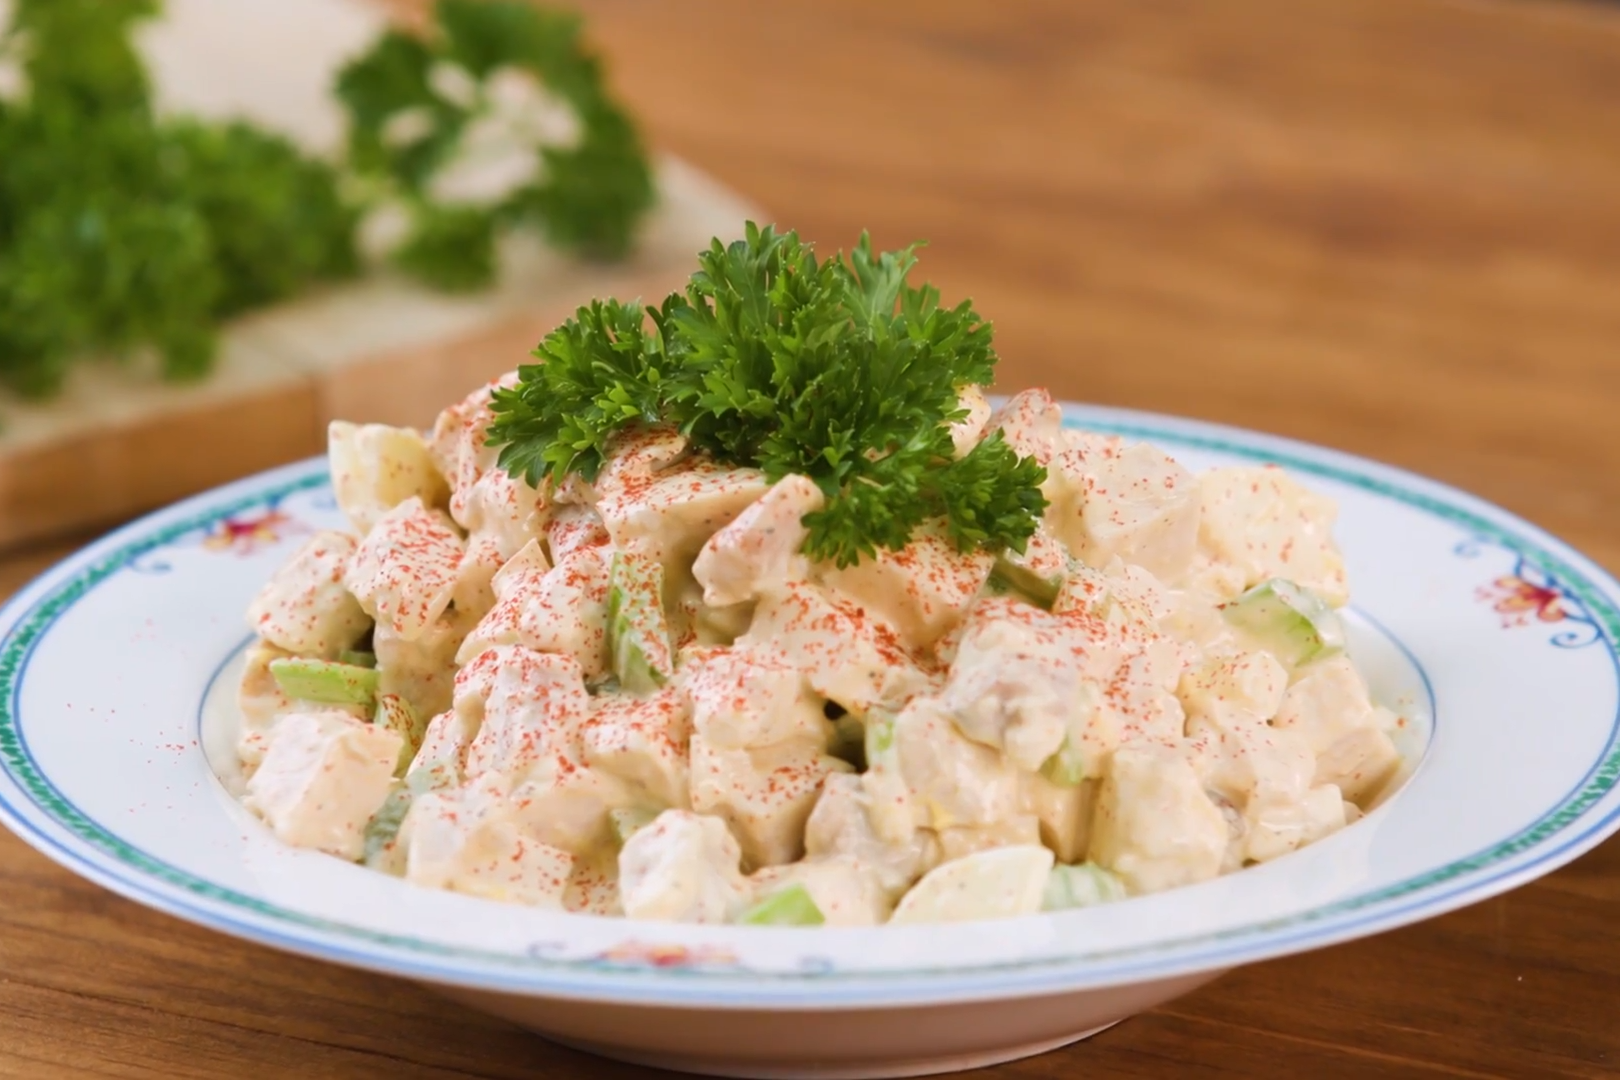 Why I Use White Meat in My Chicken Salad